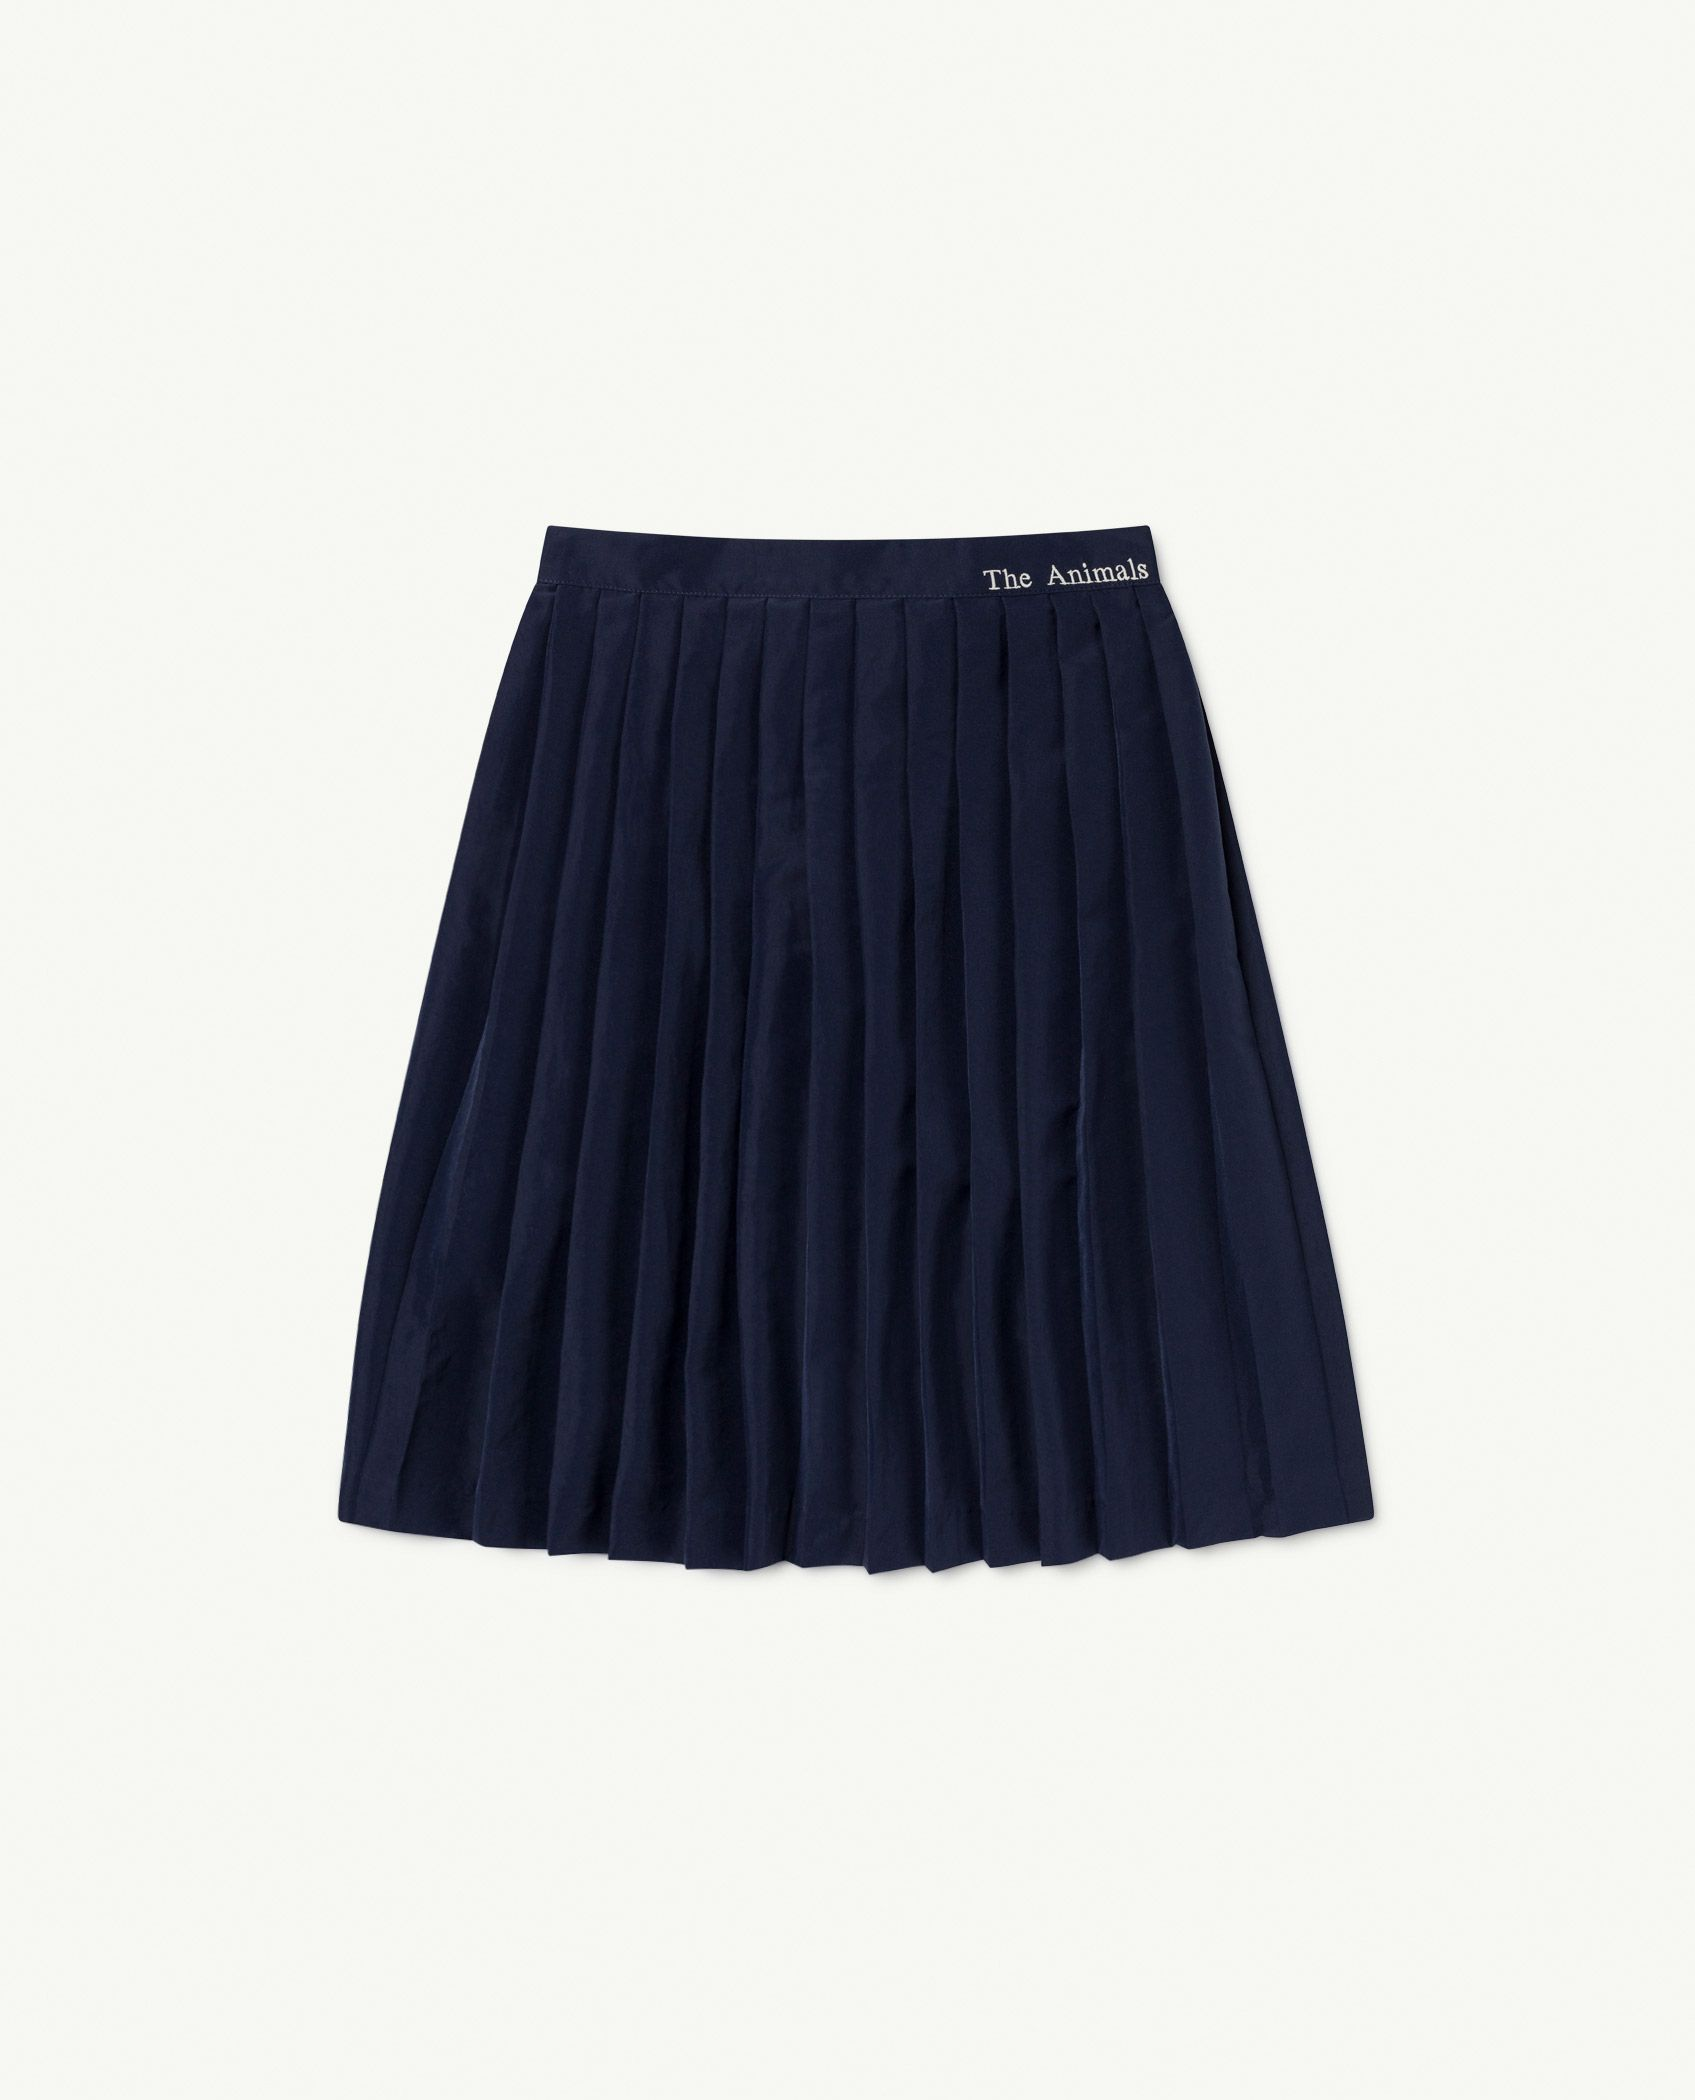 Navy The Animals Cat Skirt img-1